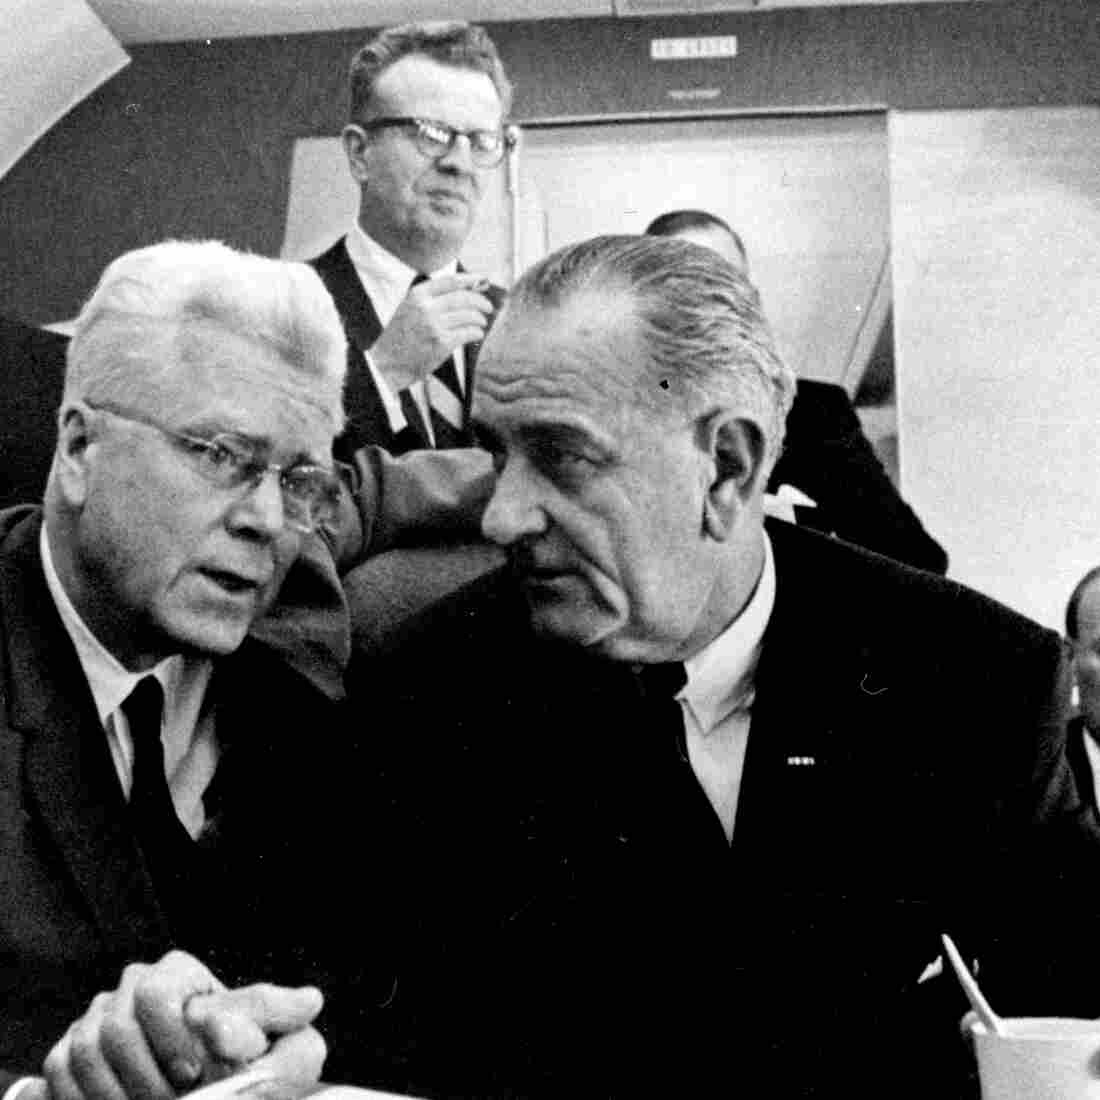 In 1965, A Conservative Tried To Keep America White. His Plan Backfired